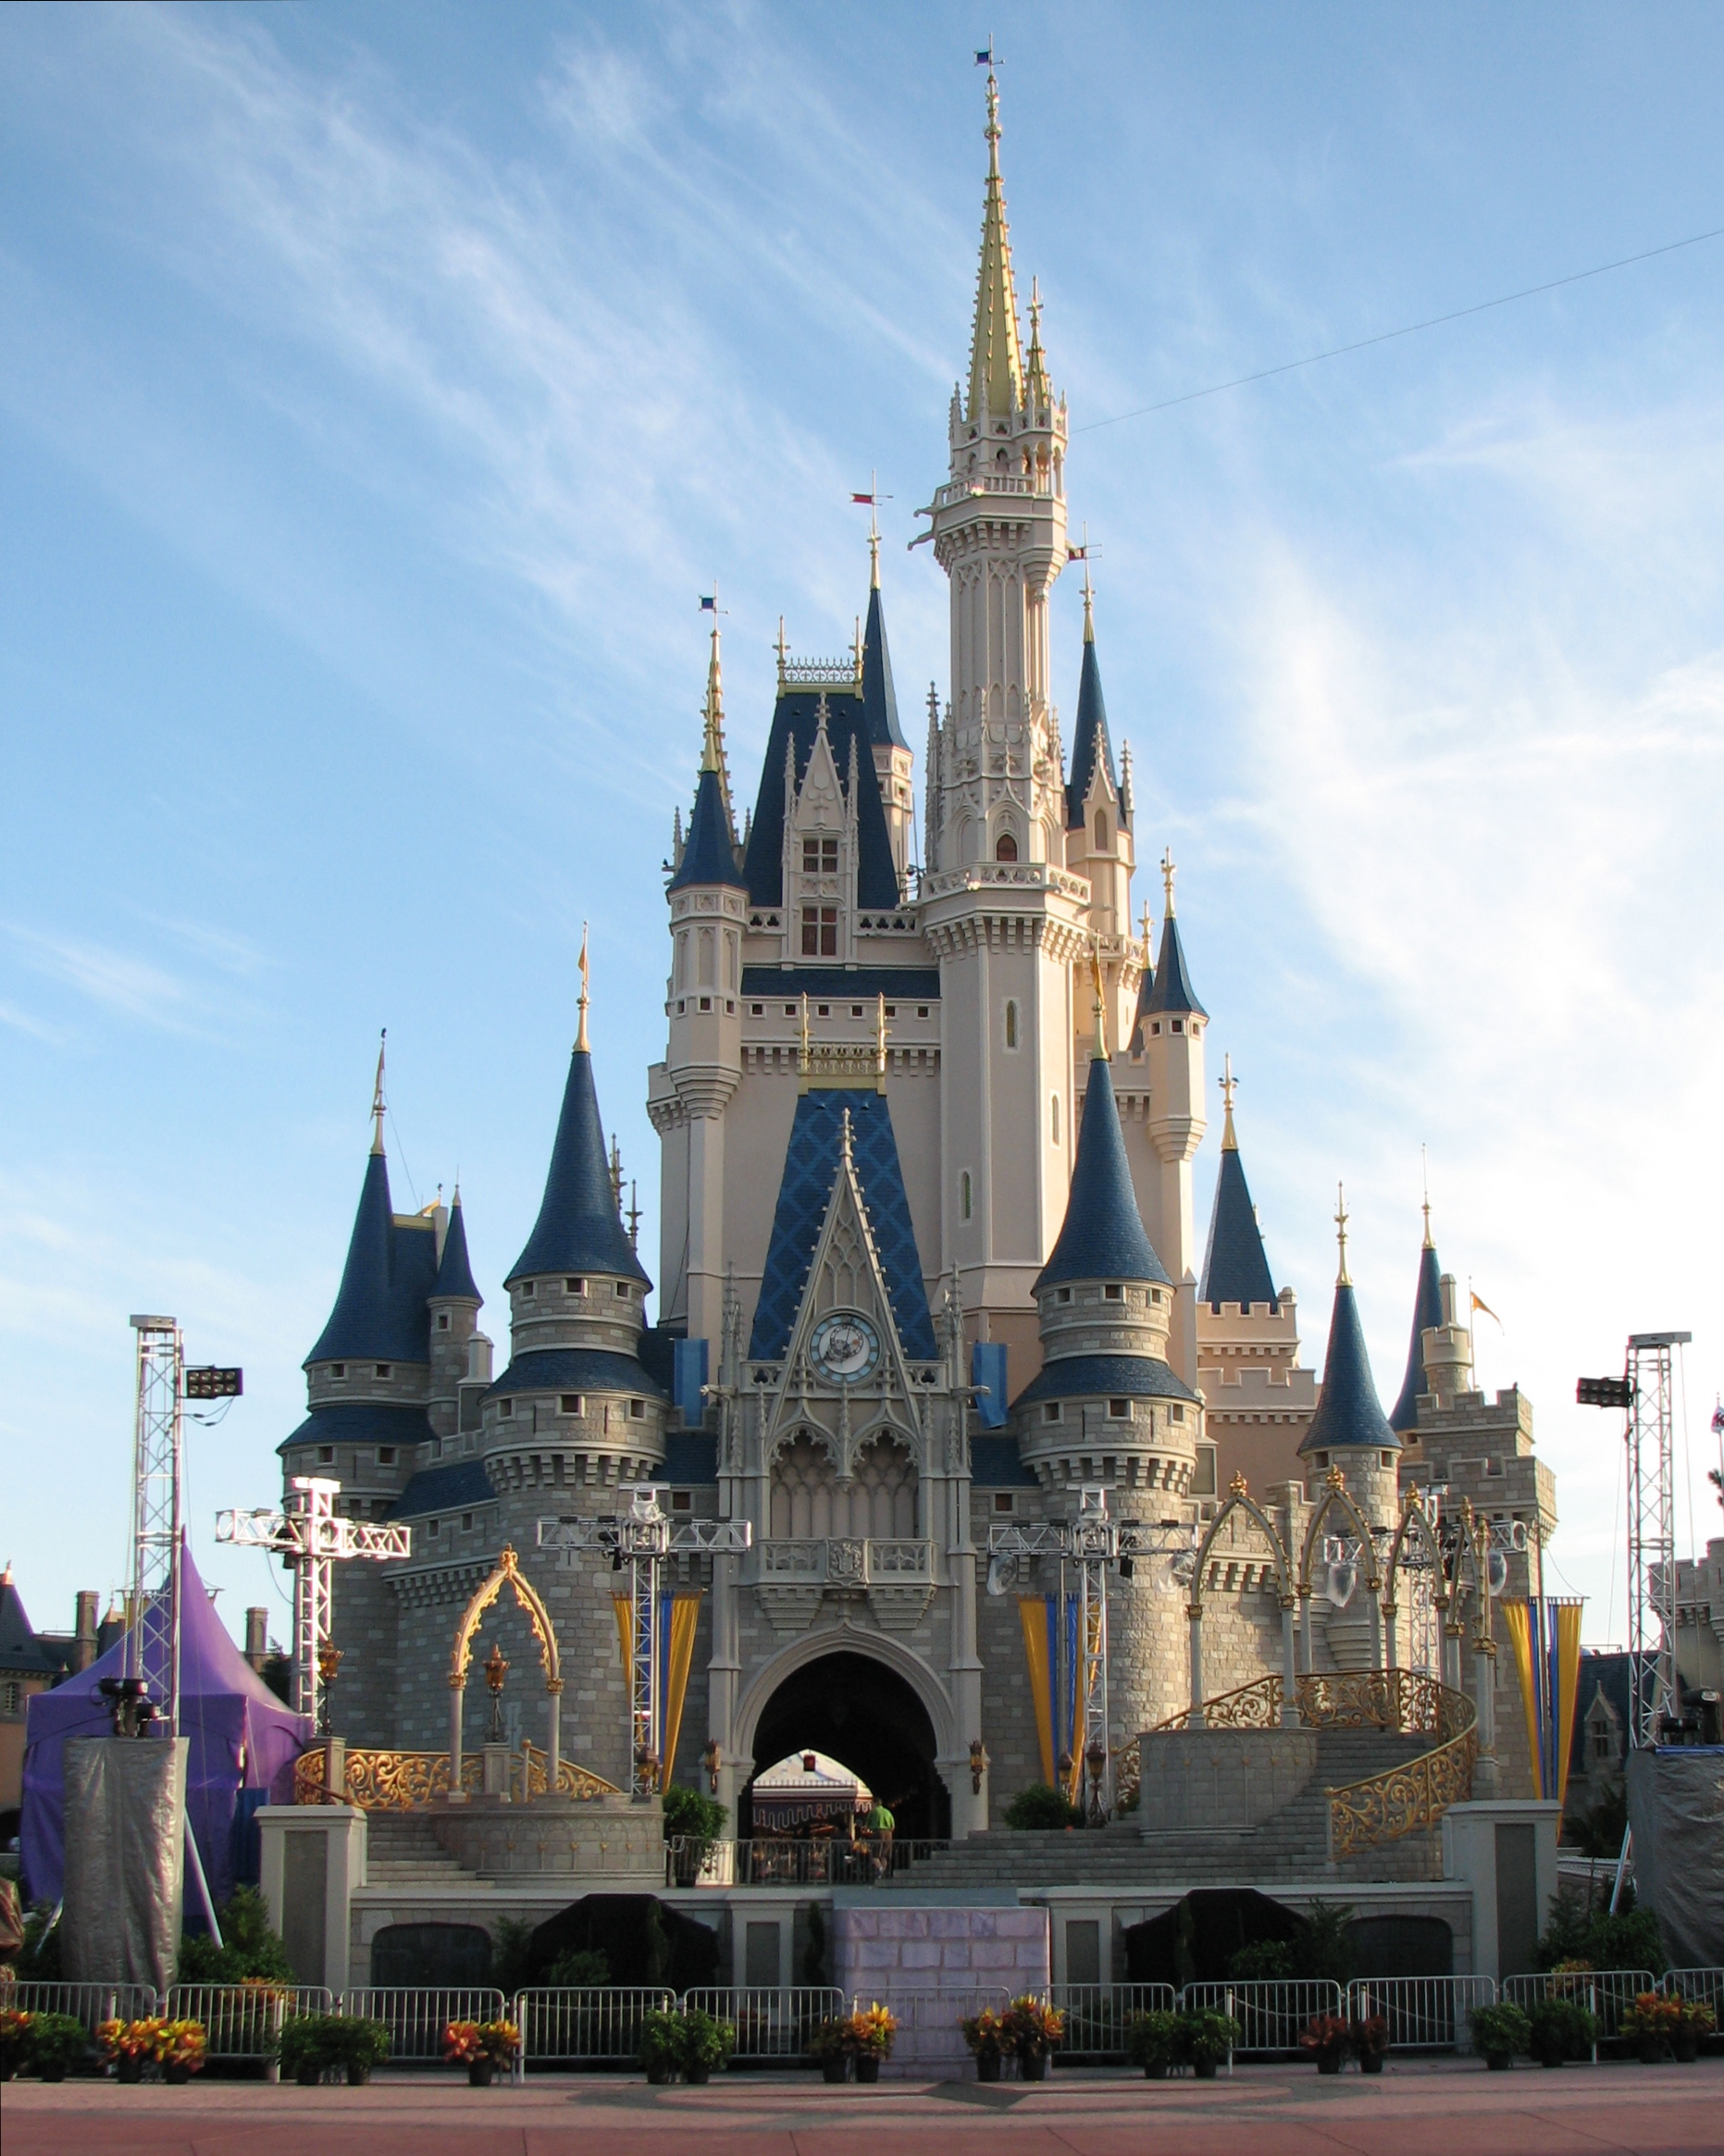 20 Great Ways to Save Money at Disney World